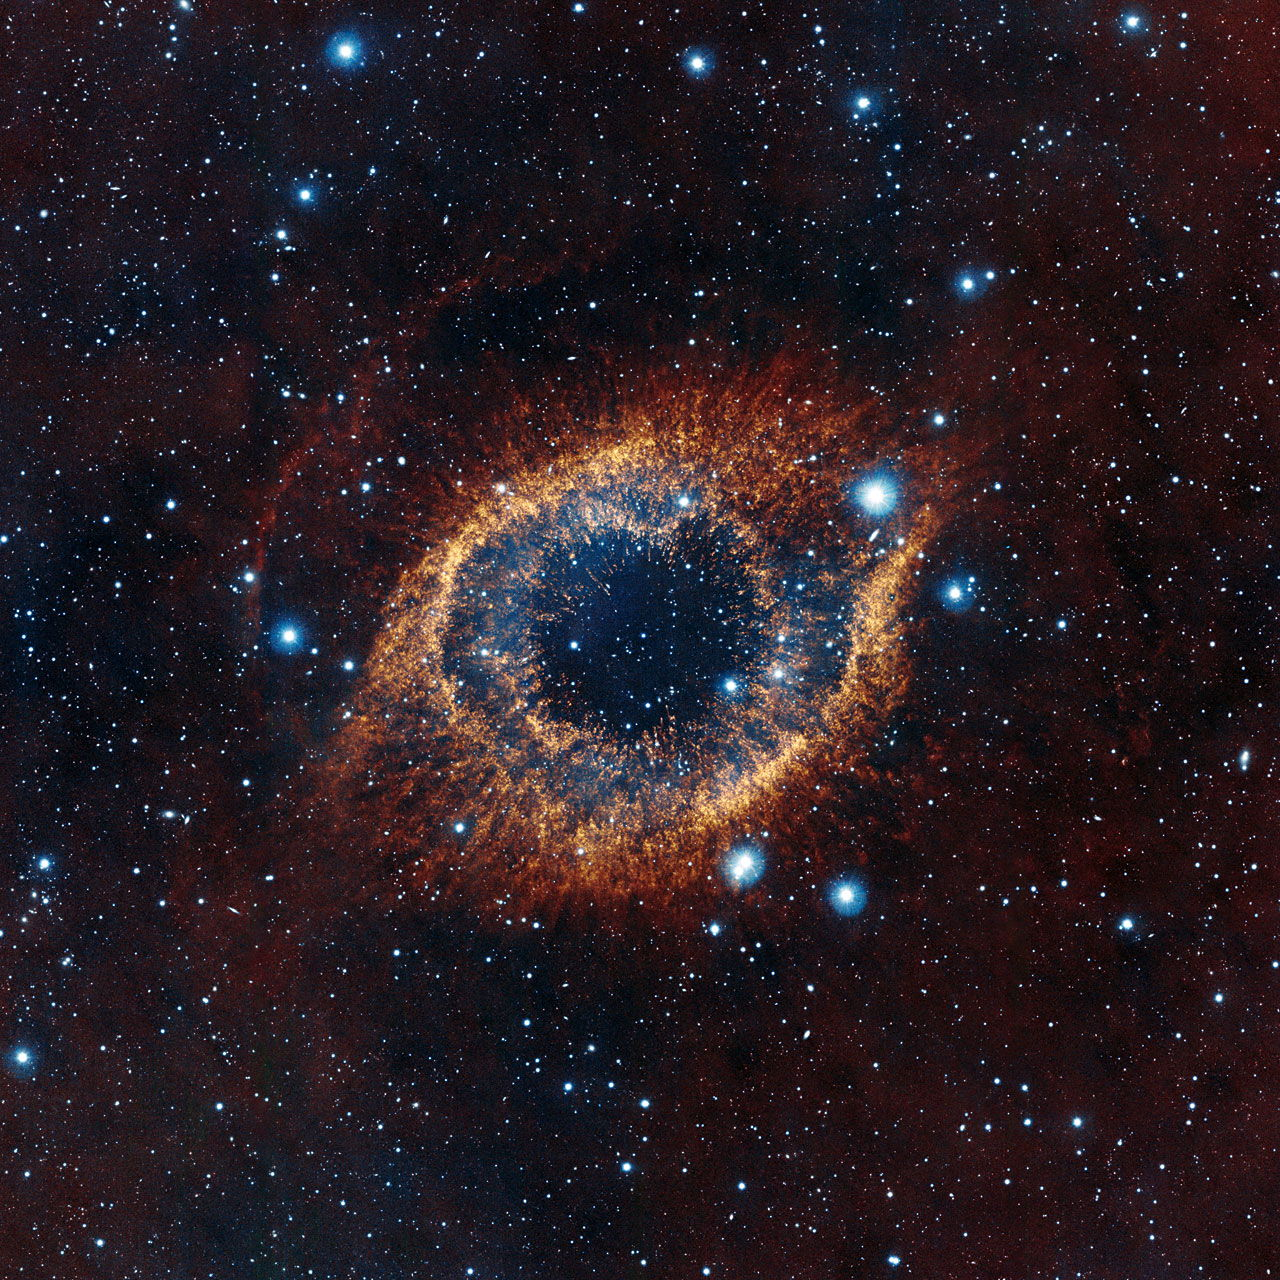 Helix Nebula Gleams Like a Golden Eye in New Photo